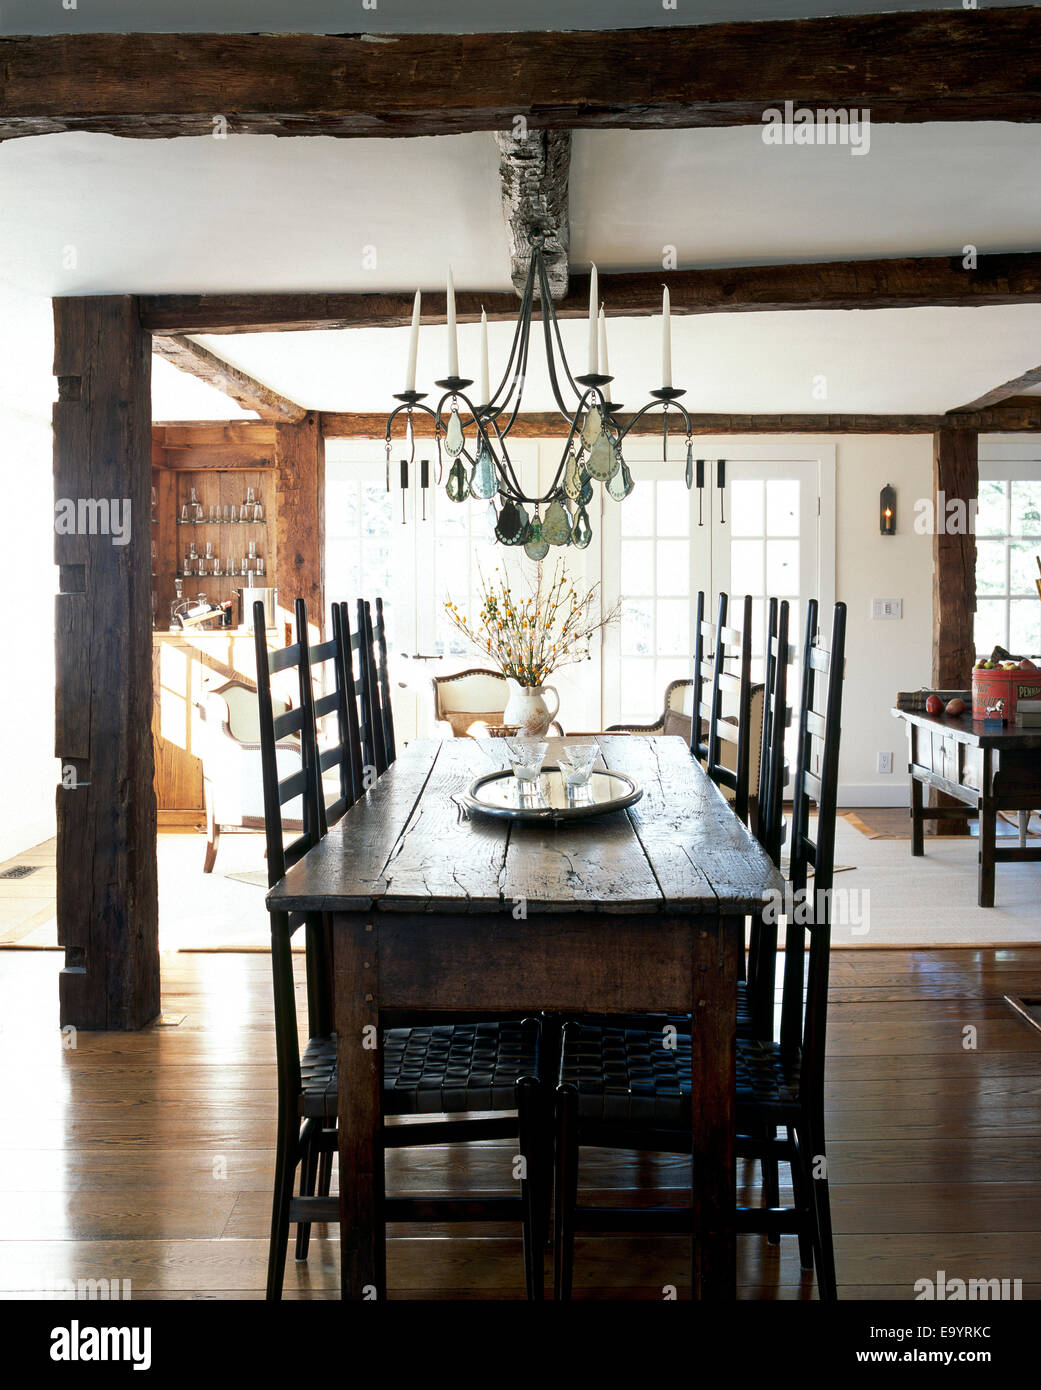 Dining room table and chairs in homes - Stock Image